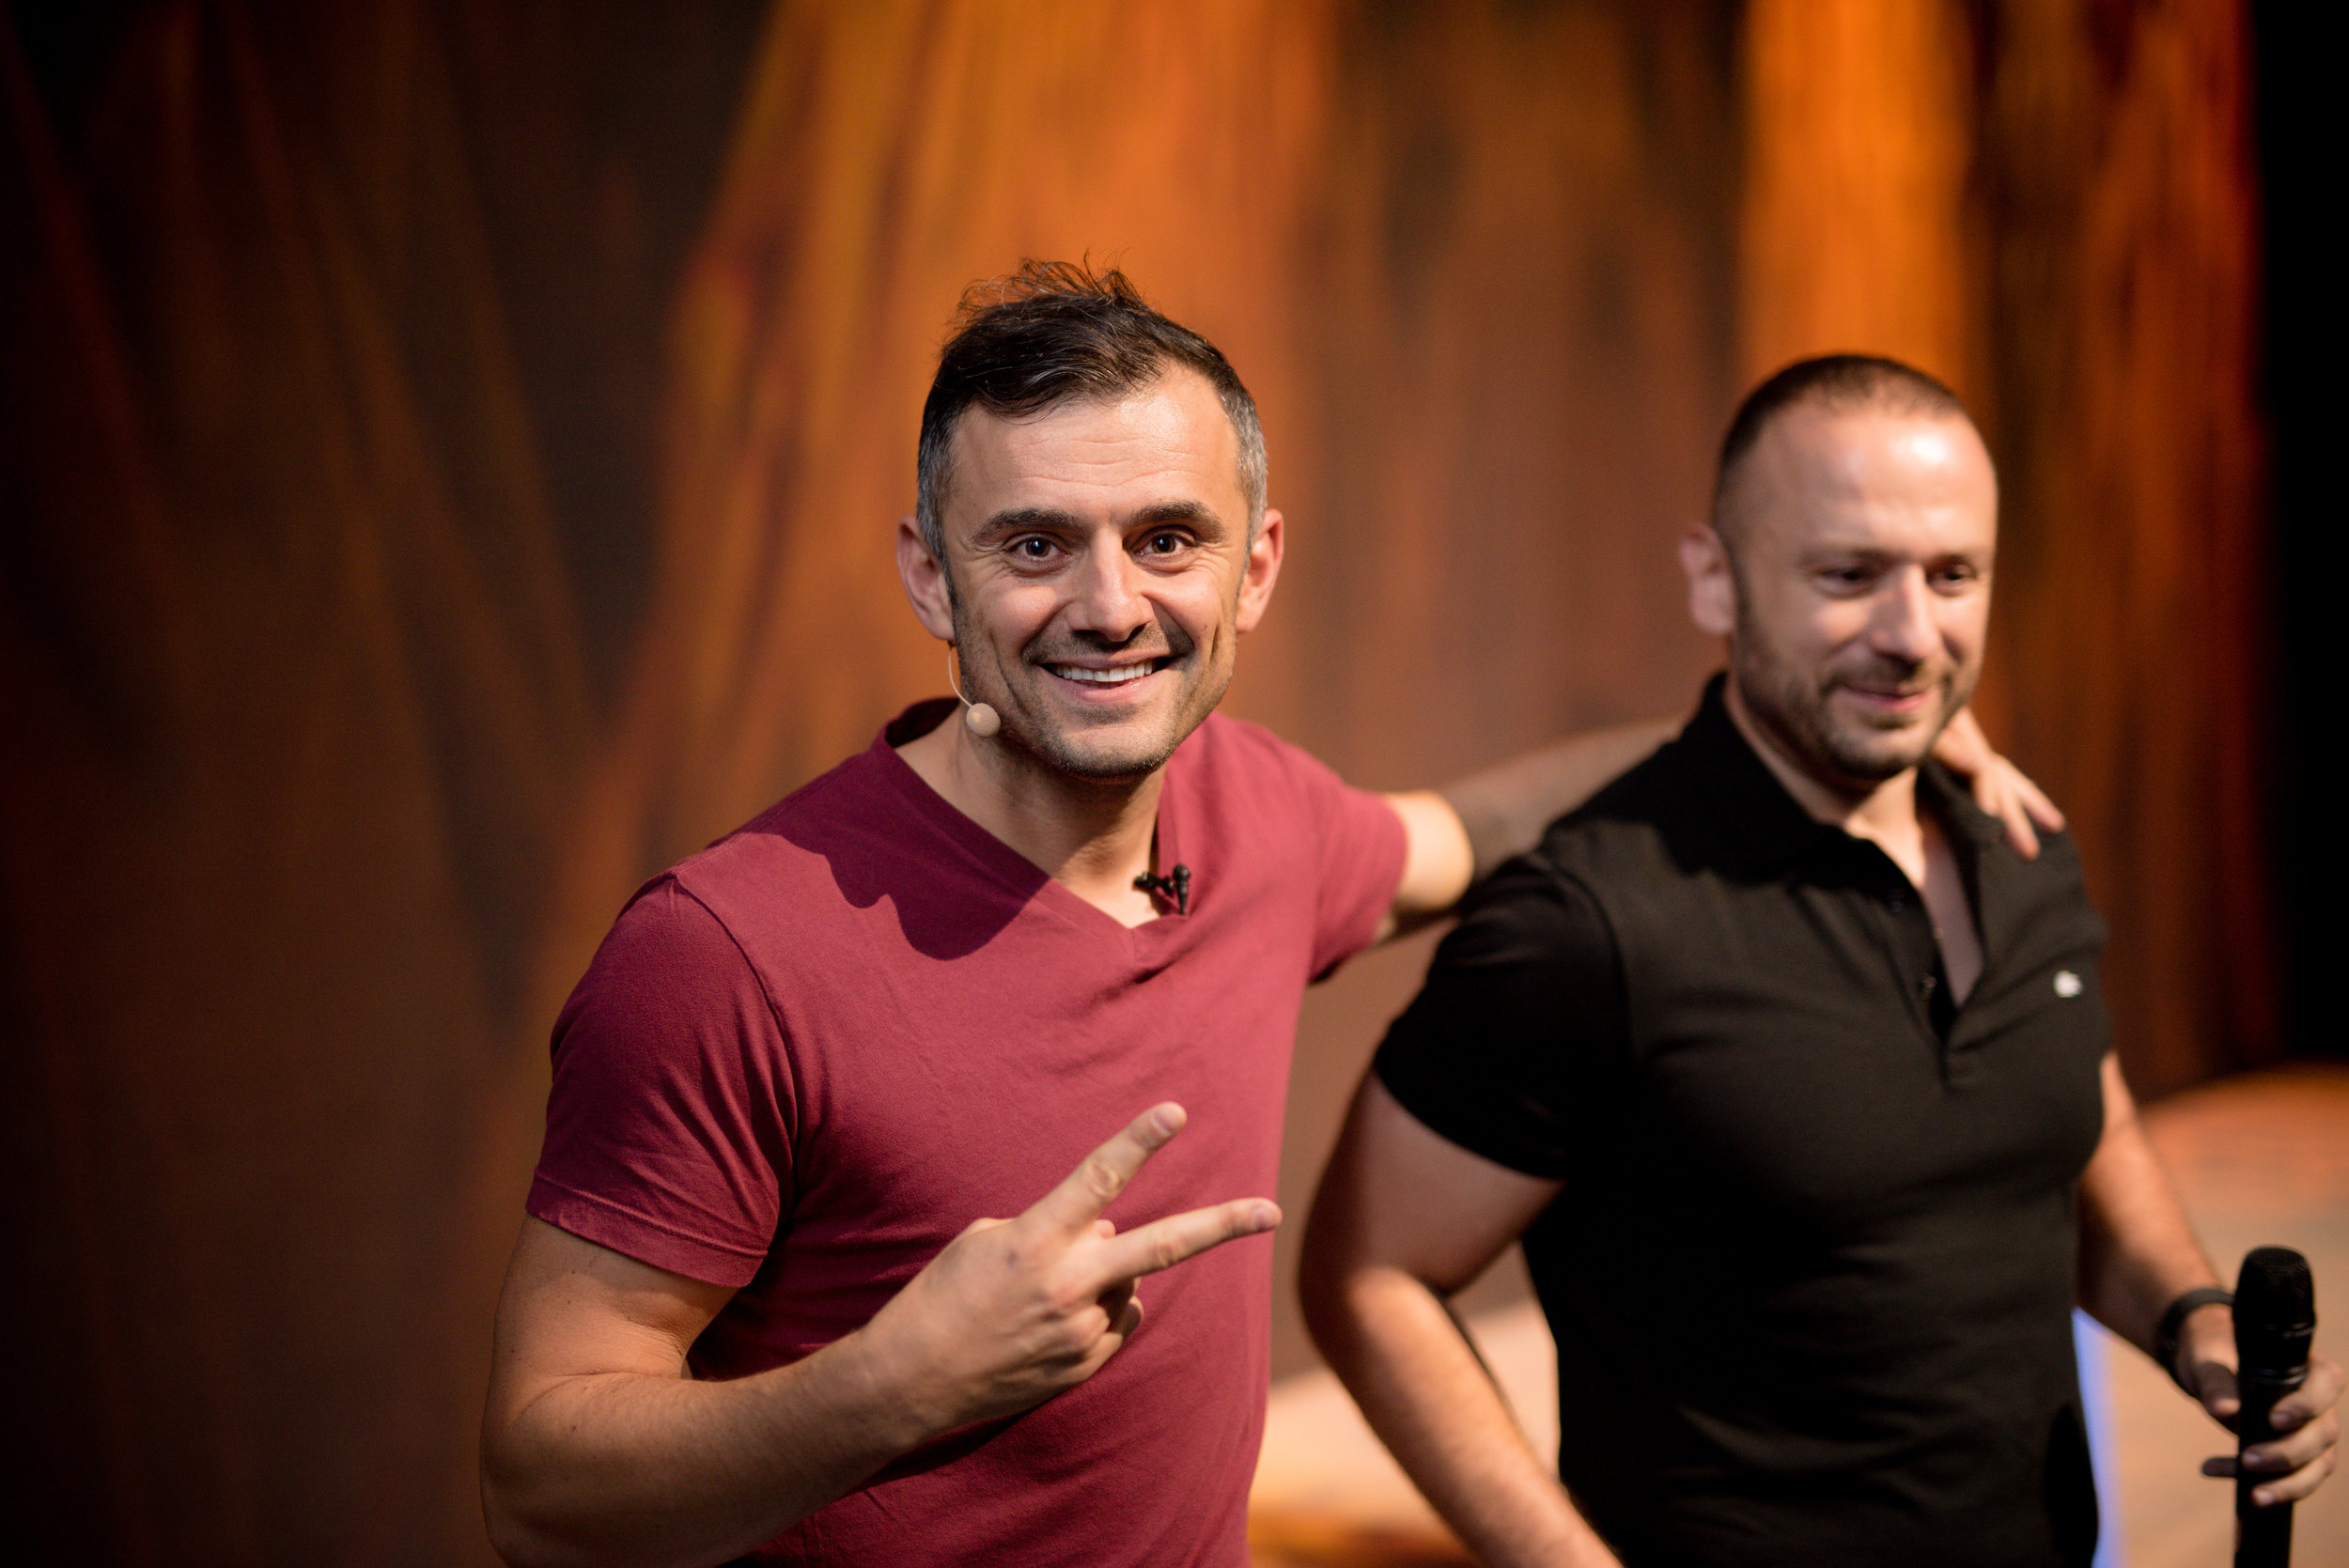 Event Photography Gary Vee x Giovanni Marsico at Arch Angels Conference